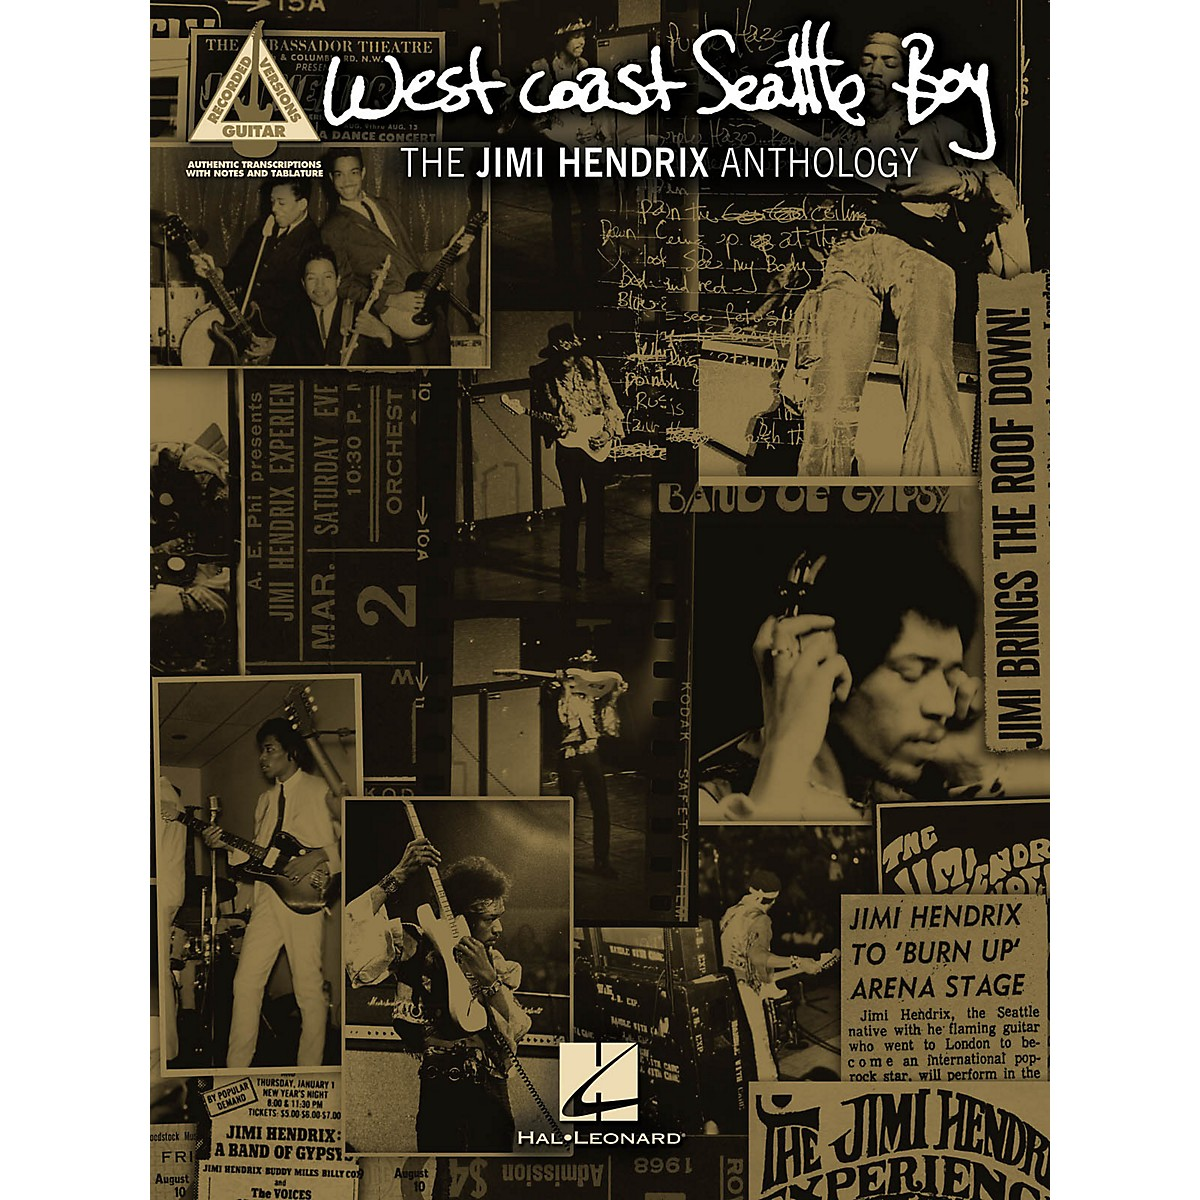 Hal Leonard Jimi Hendrix West Coast Seattle Boy: The Jimi Hendrix Anthology Guitar Tab Songbook